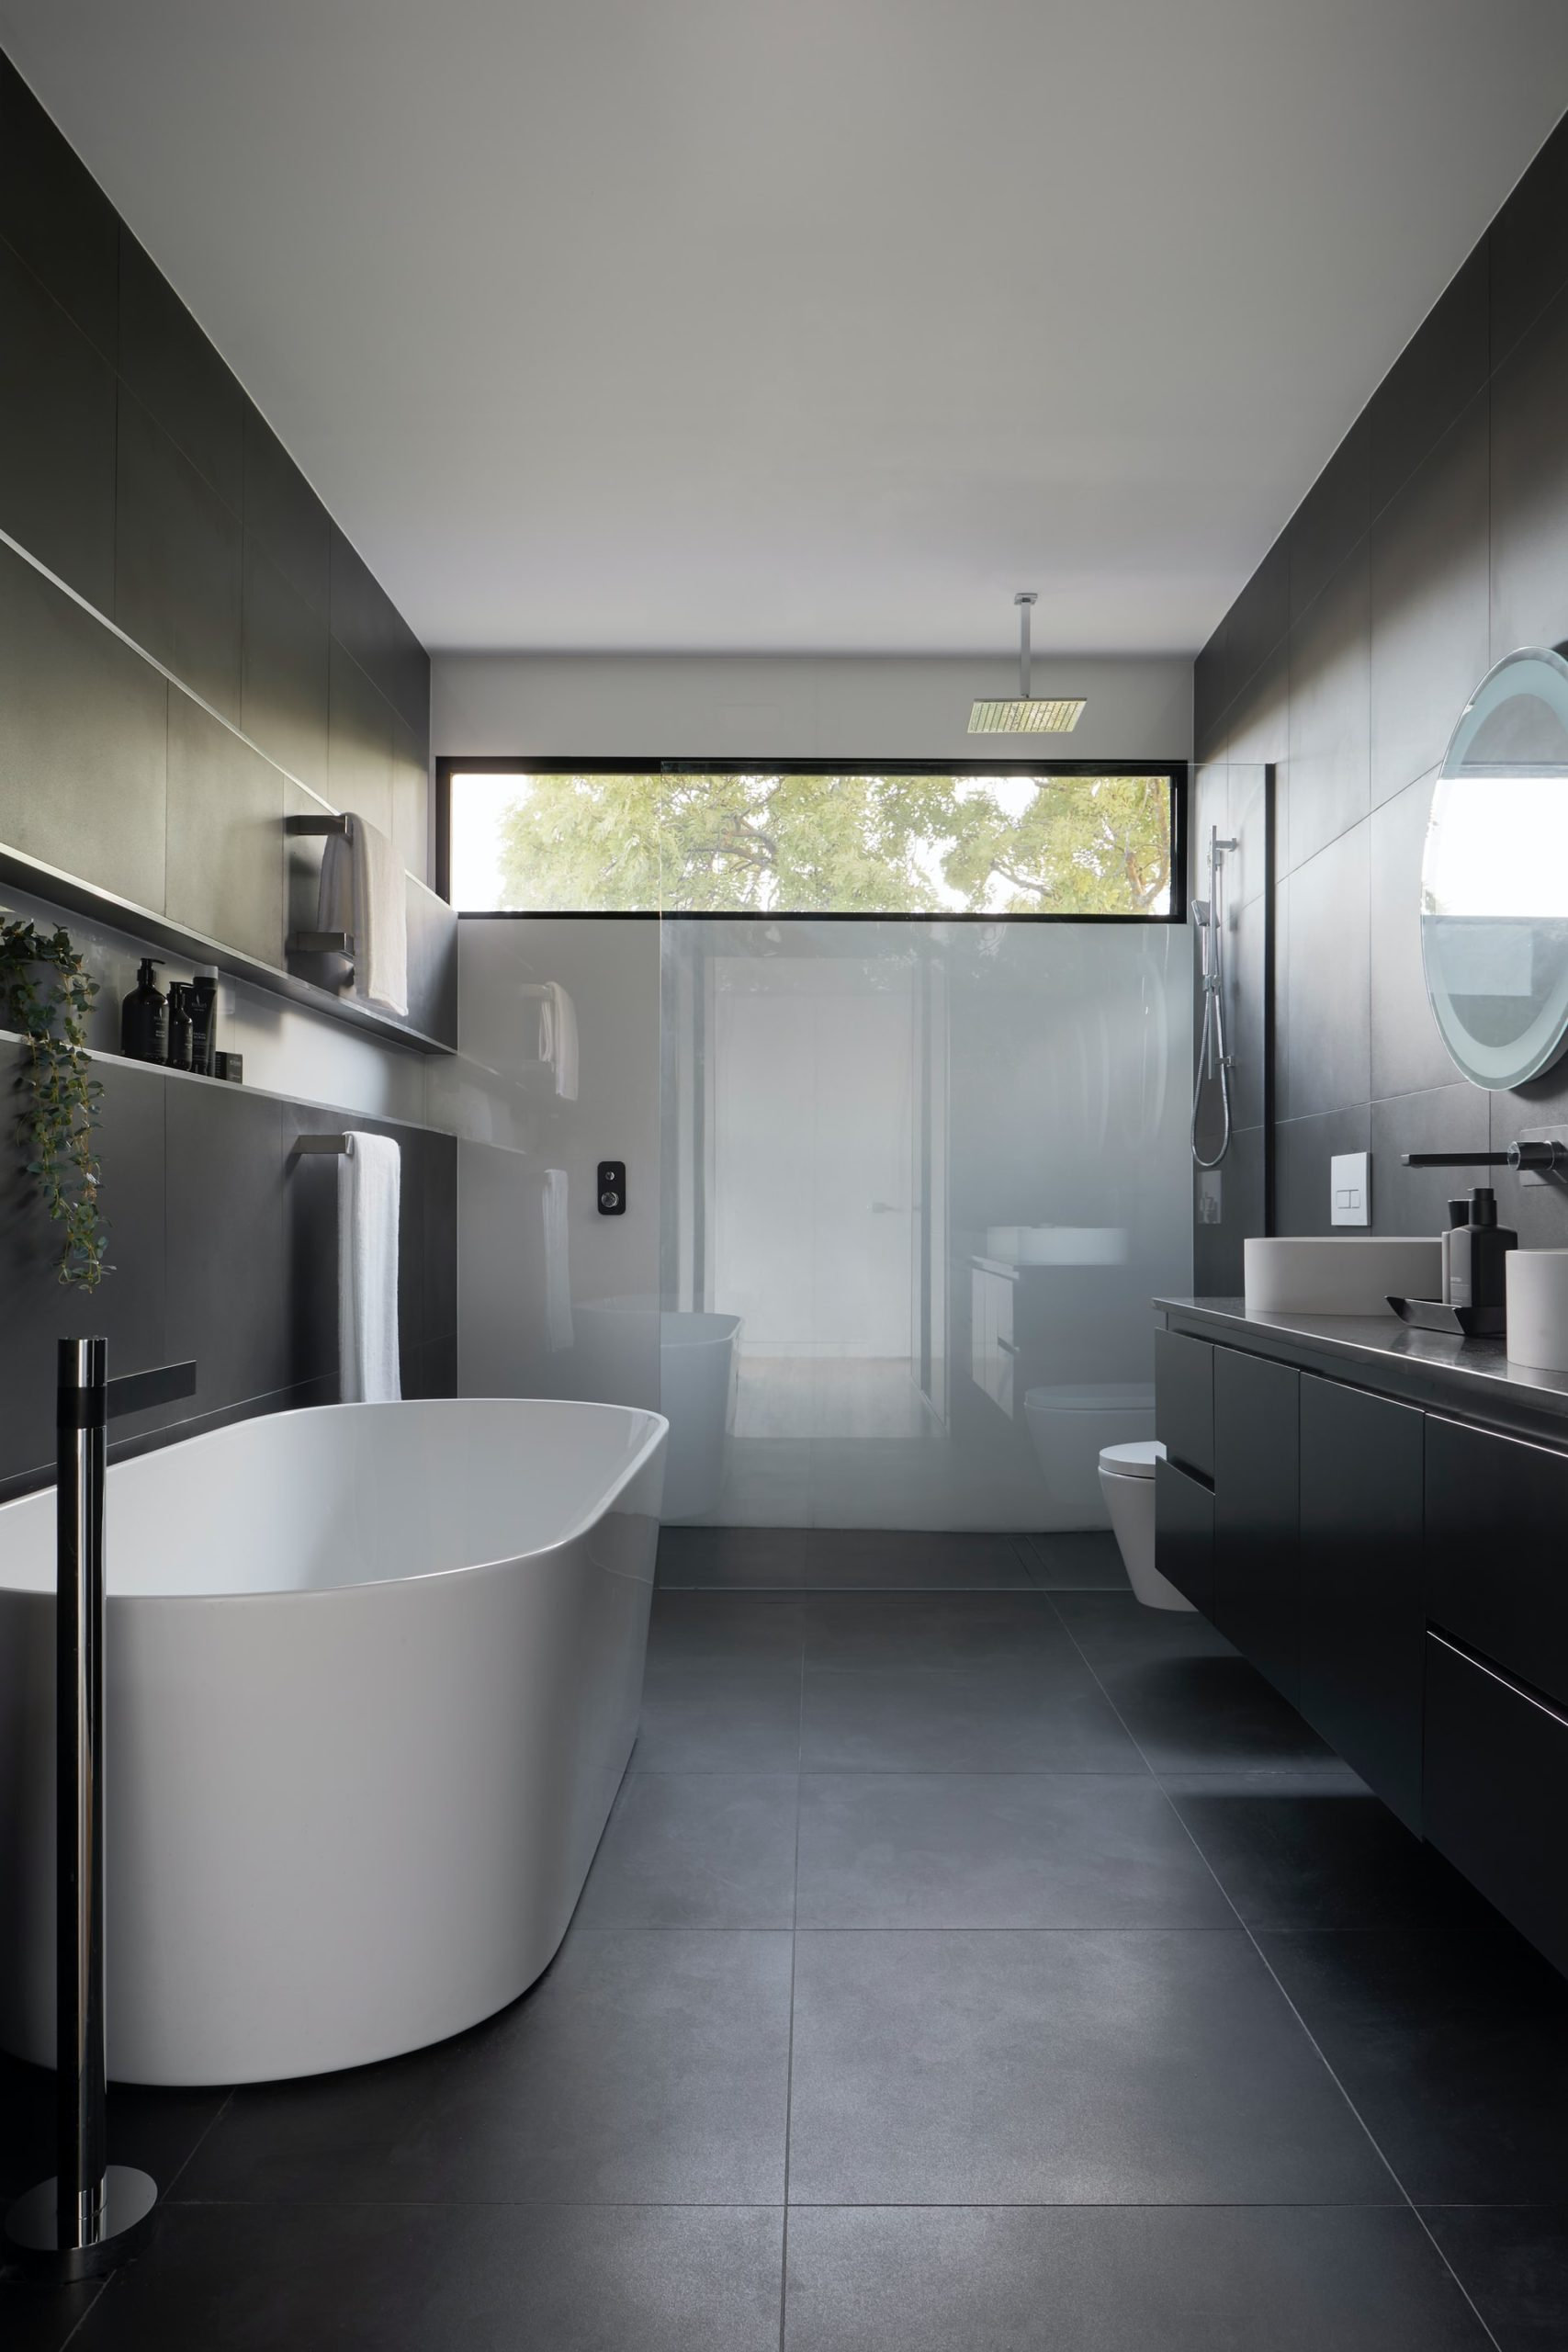 Fitted Furniture Bathroom Article Image